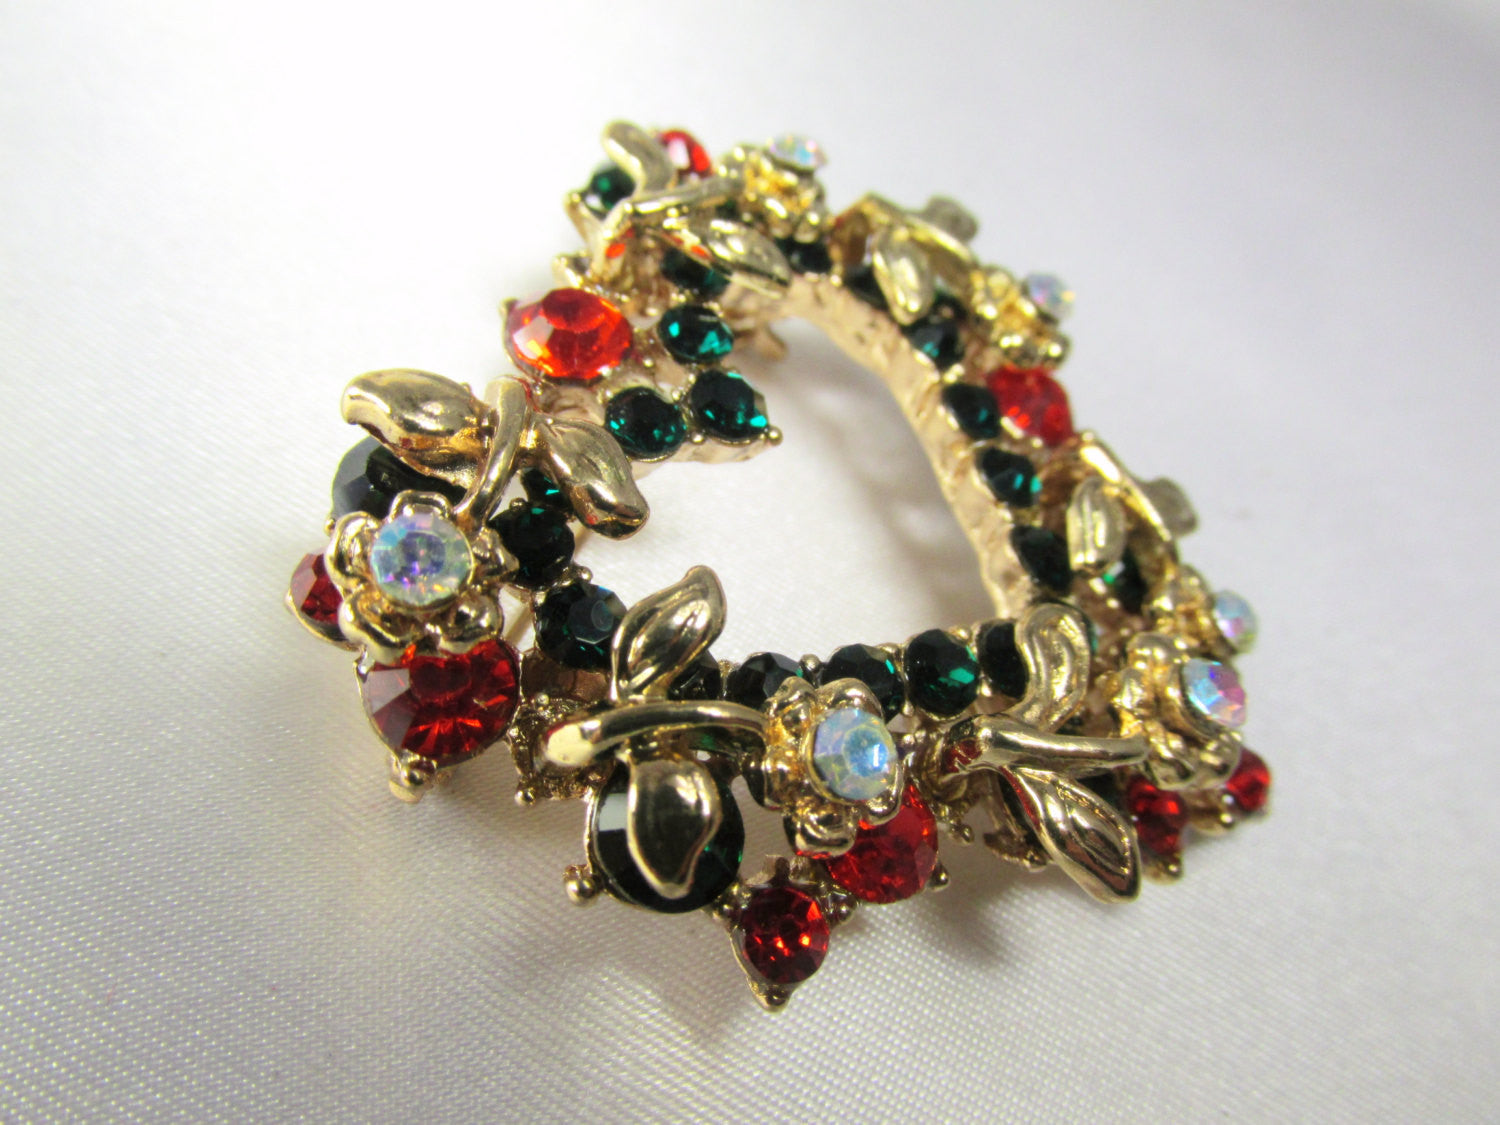 Christmas Heart Wreath Brooch in Green, Red, Crystal AB and Gold - Odyssey Cache - 3